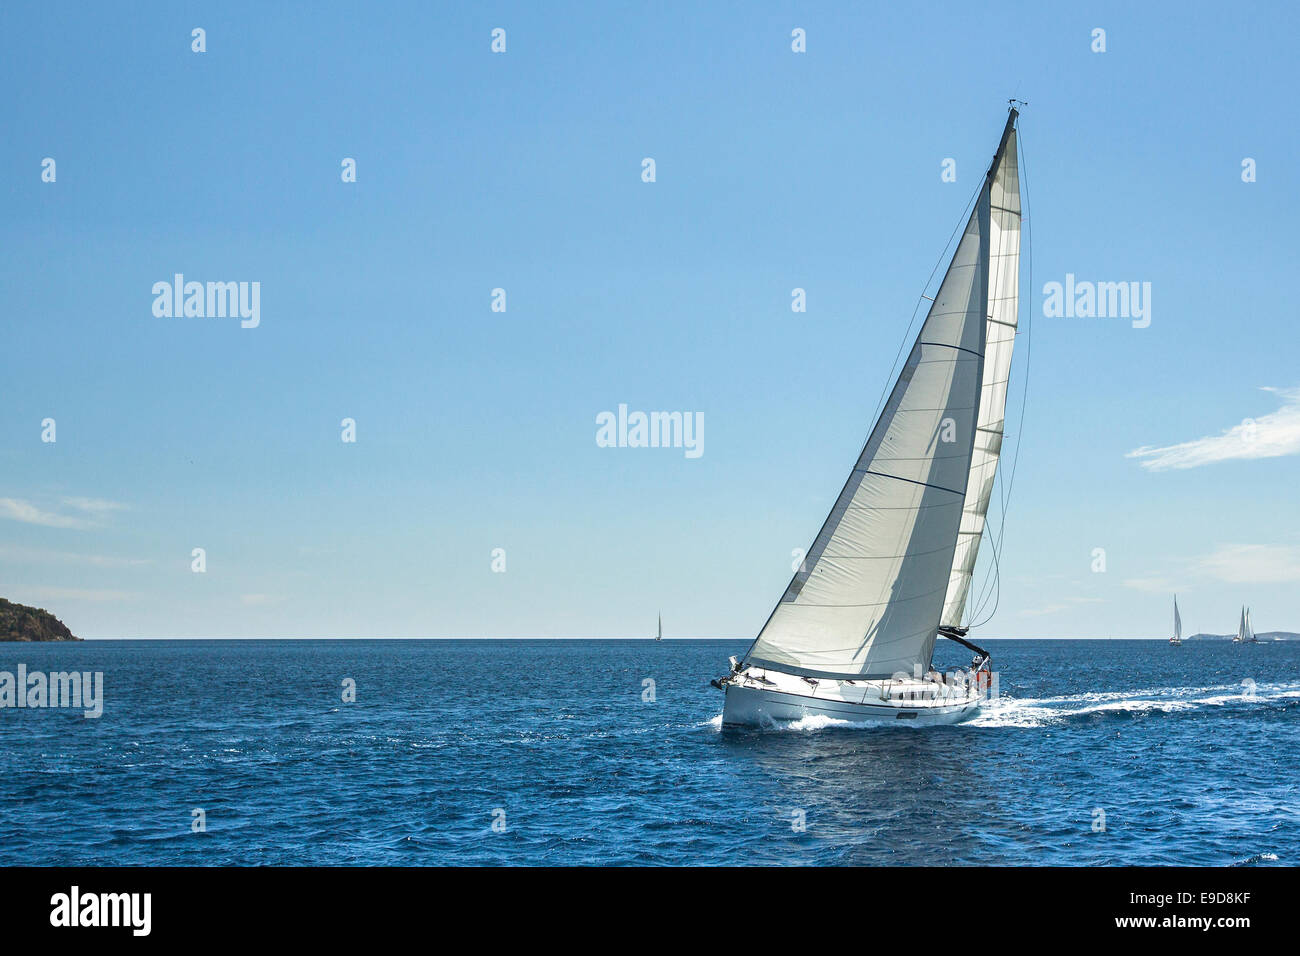 Boat in sailing regatta. luxury cruise yachts. Picture with space for text. - Stock Image